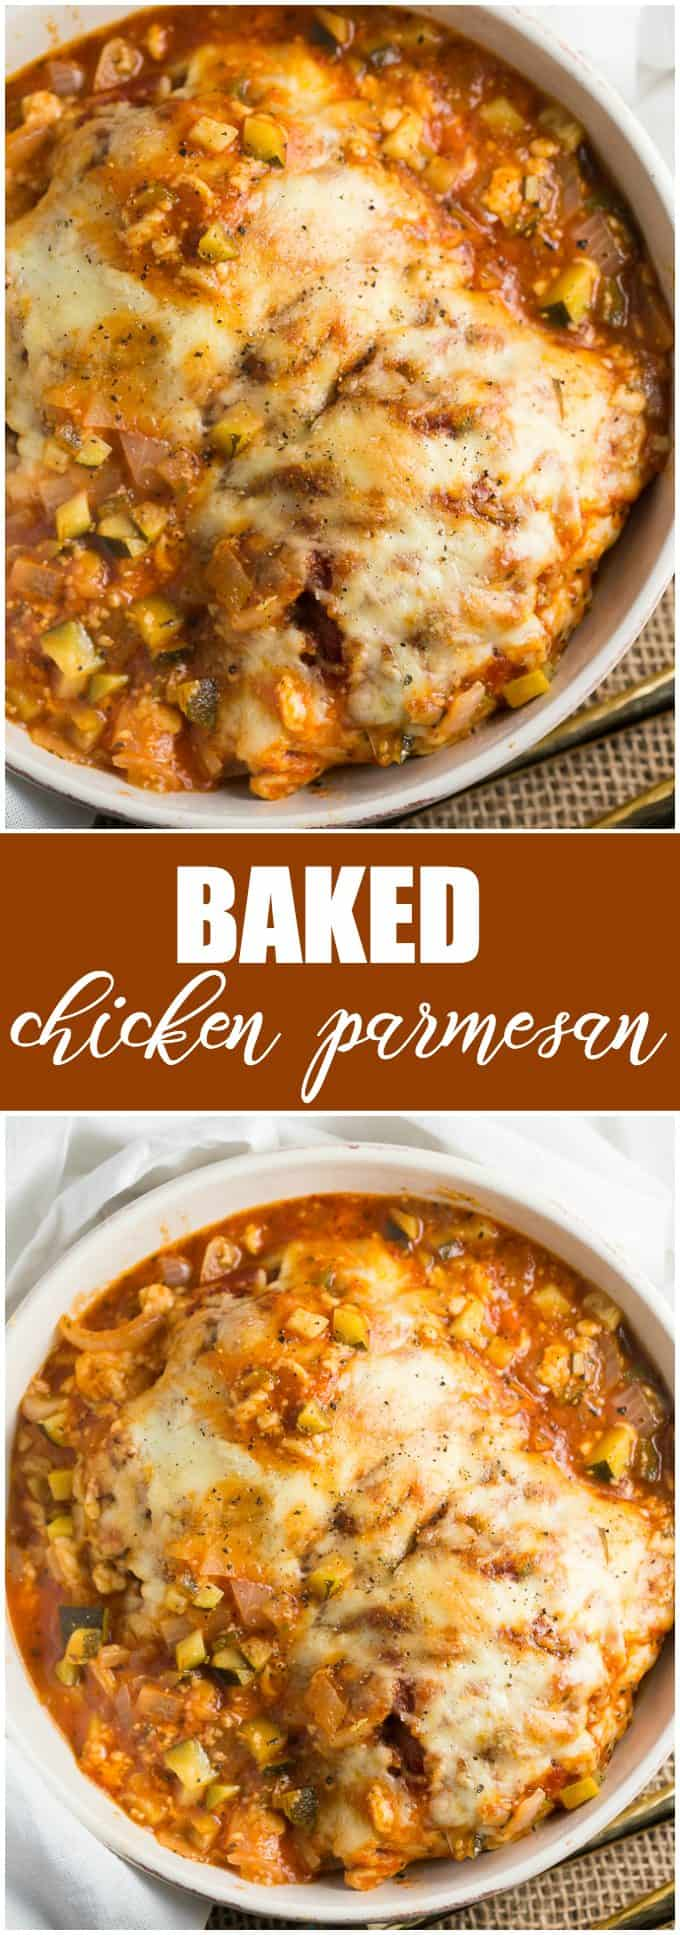 Baked Chicken Parmesan - Easy, cheesy, mouthwatering comfort food!